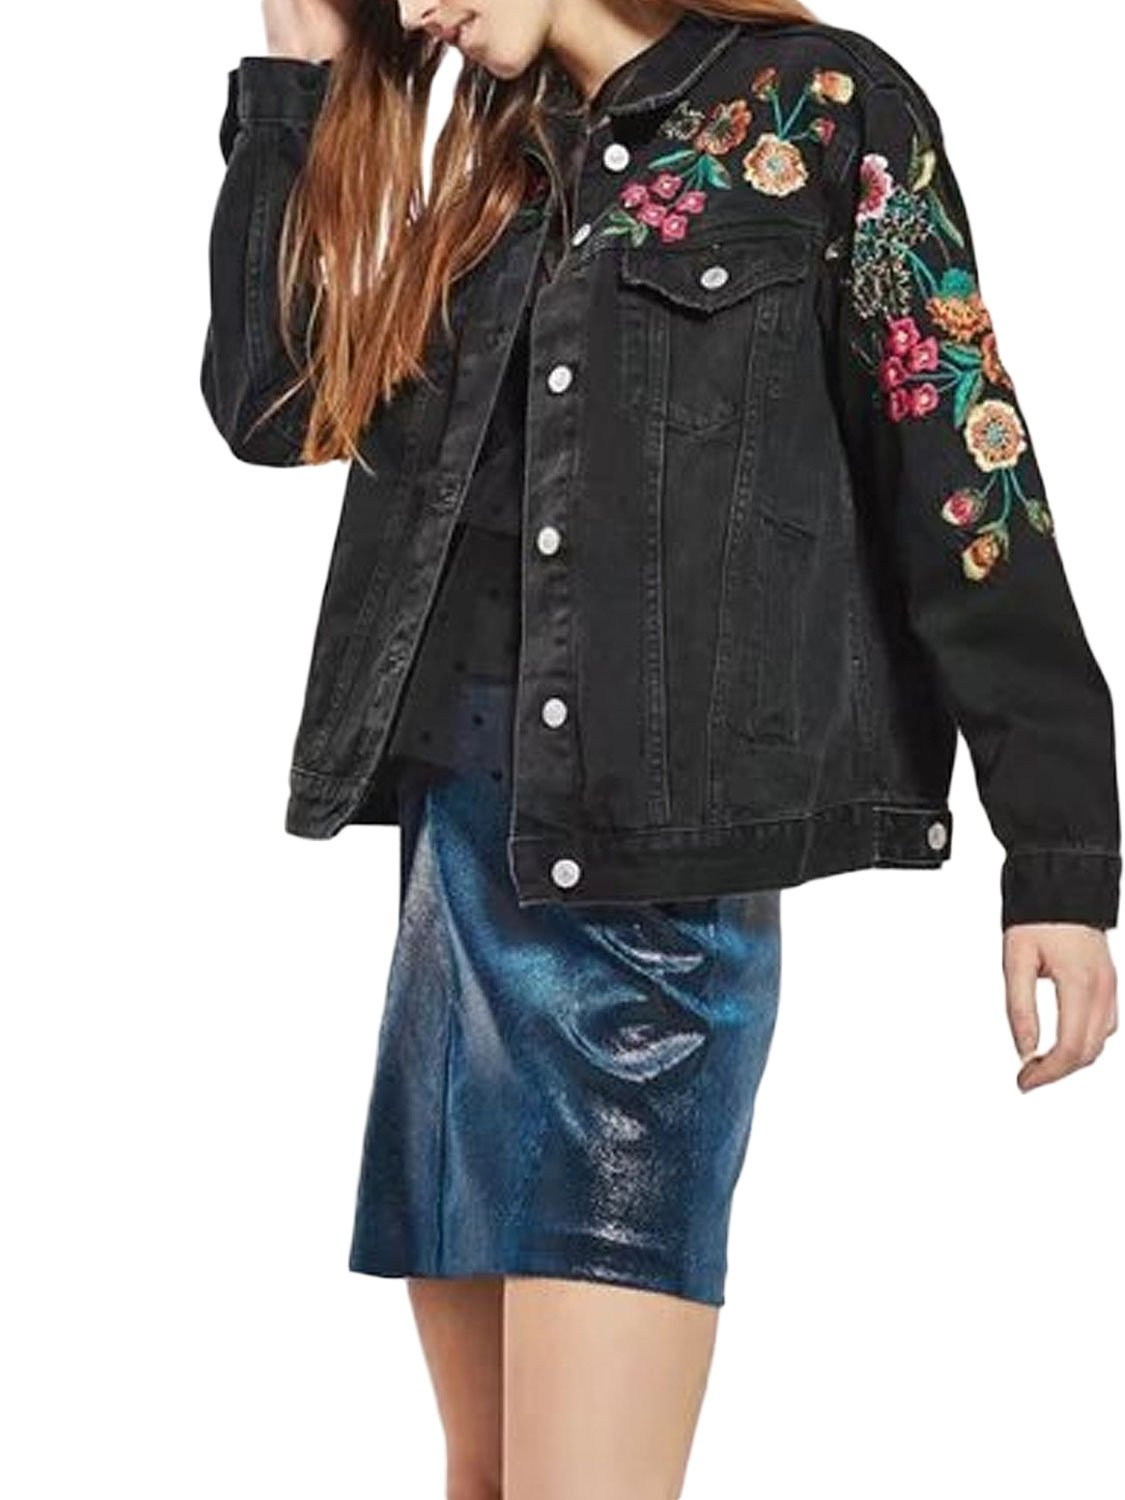 PERSUN Womens Fashion Black Floral Embroidery Denim Jacket,Large